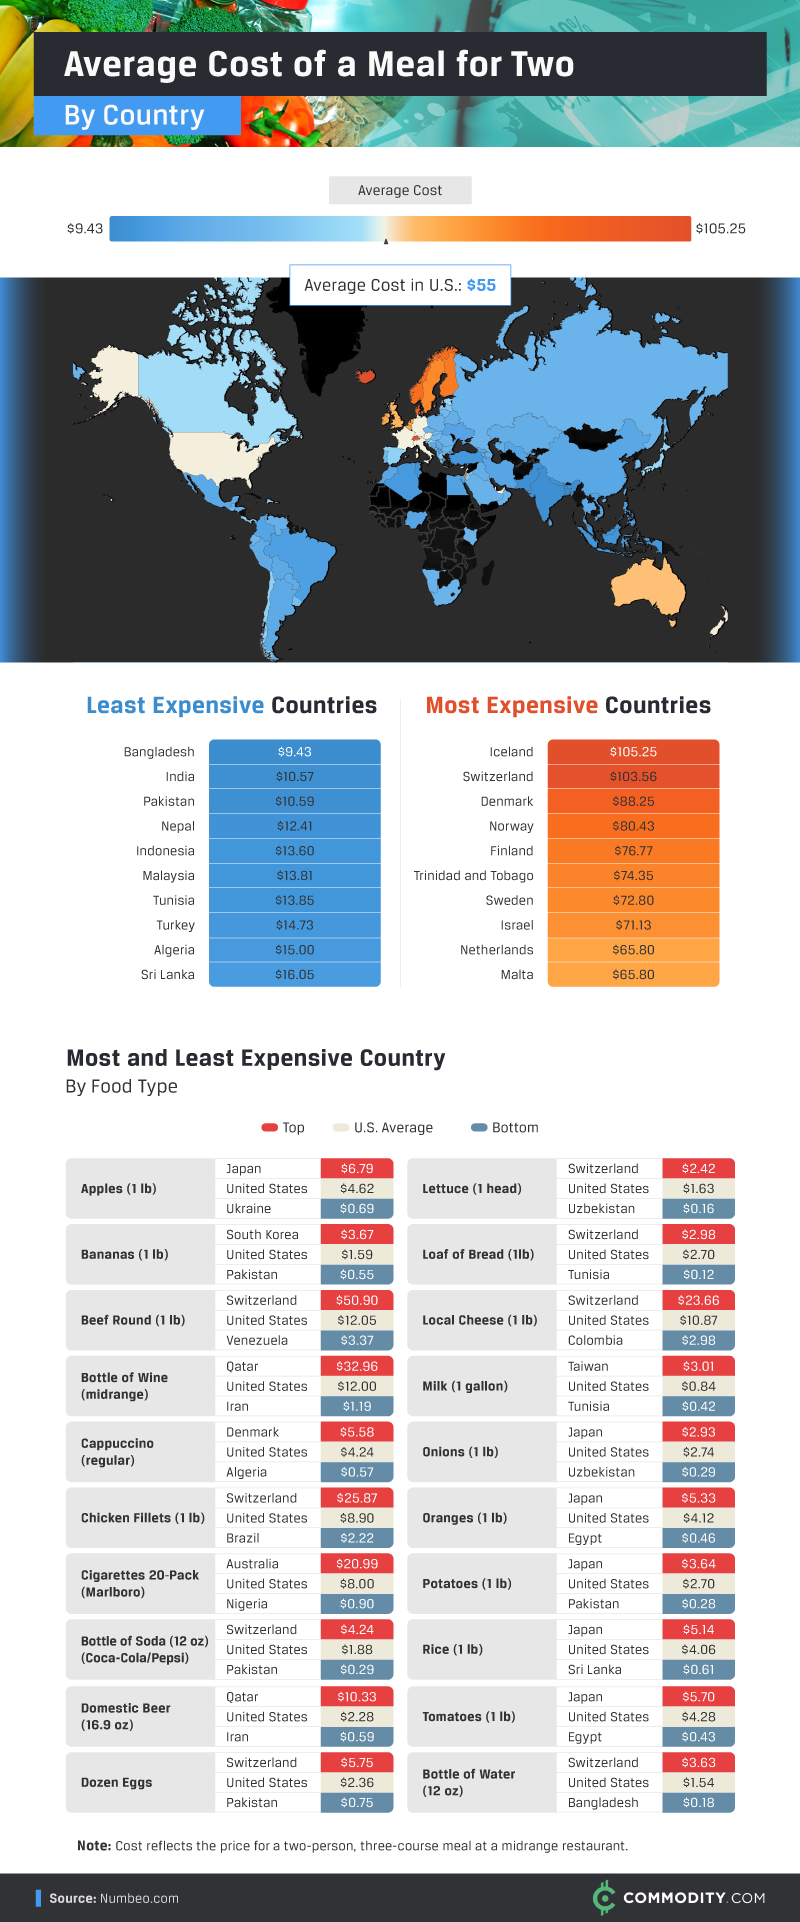 Average Cost of a Meal for Two by Country